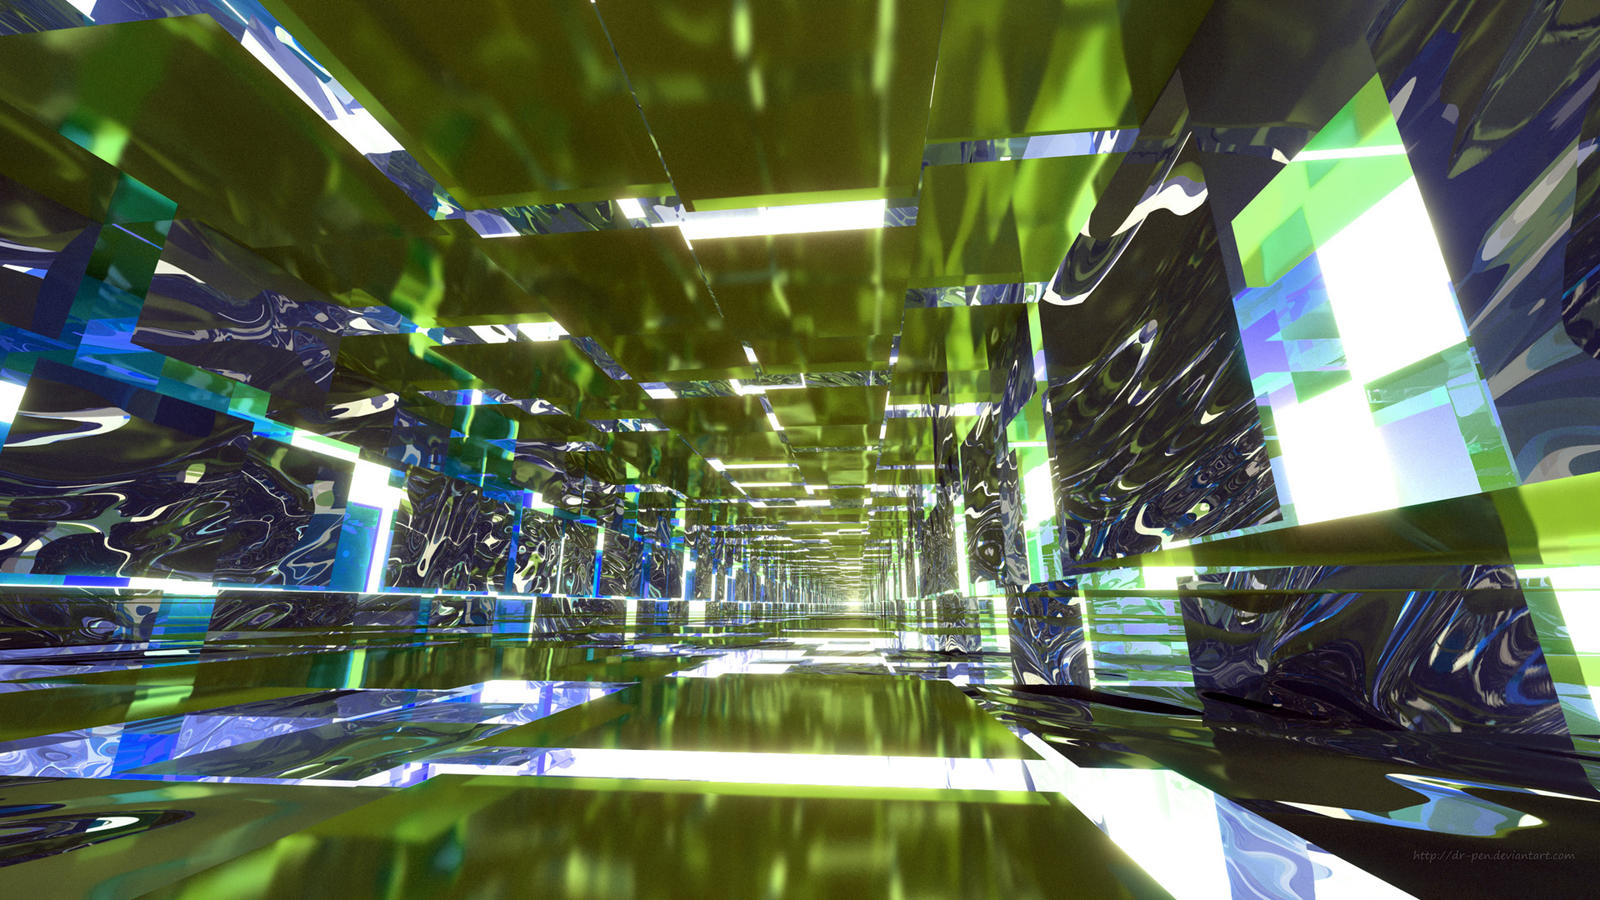 Lime green and blue mirrored tunnel by dr pen on deviantart for Lime and blue